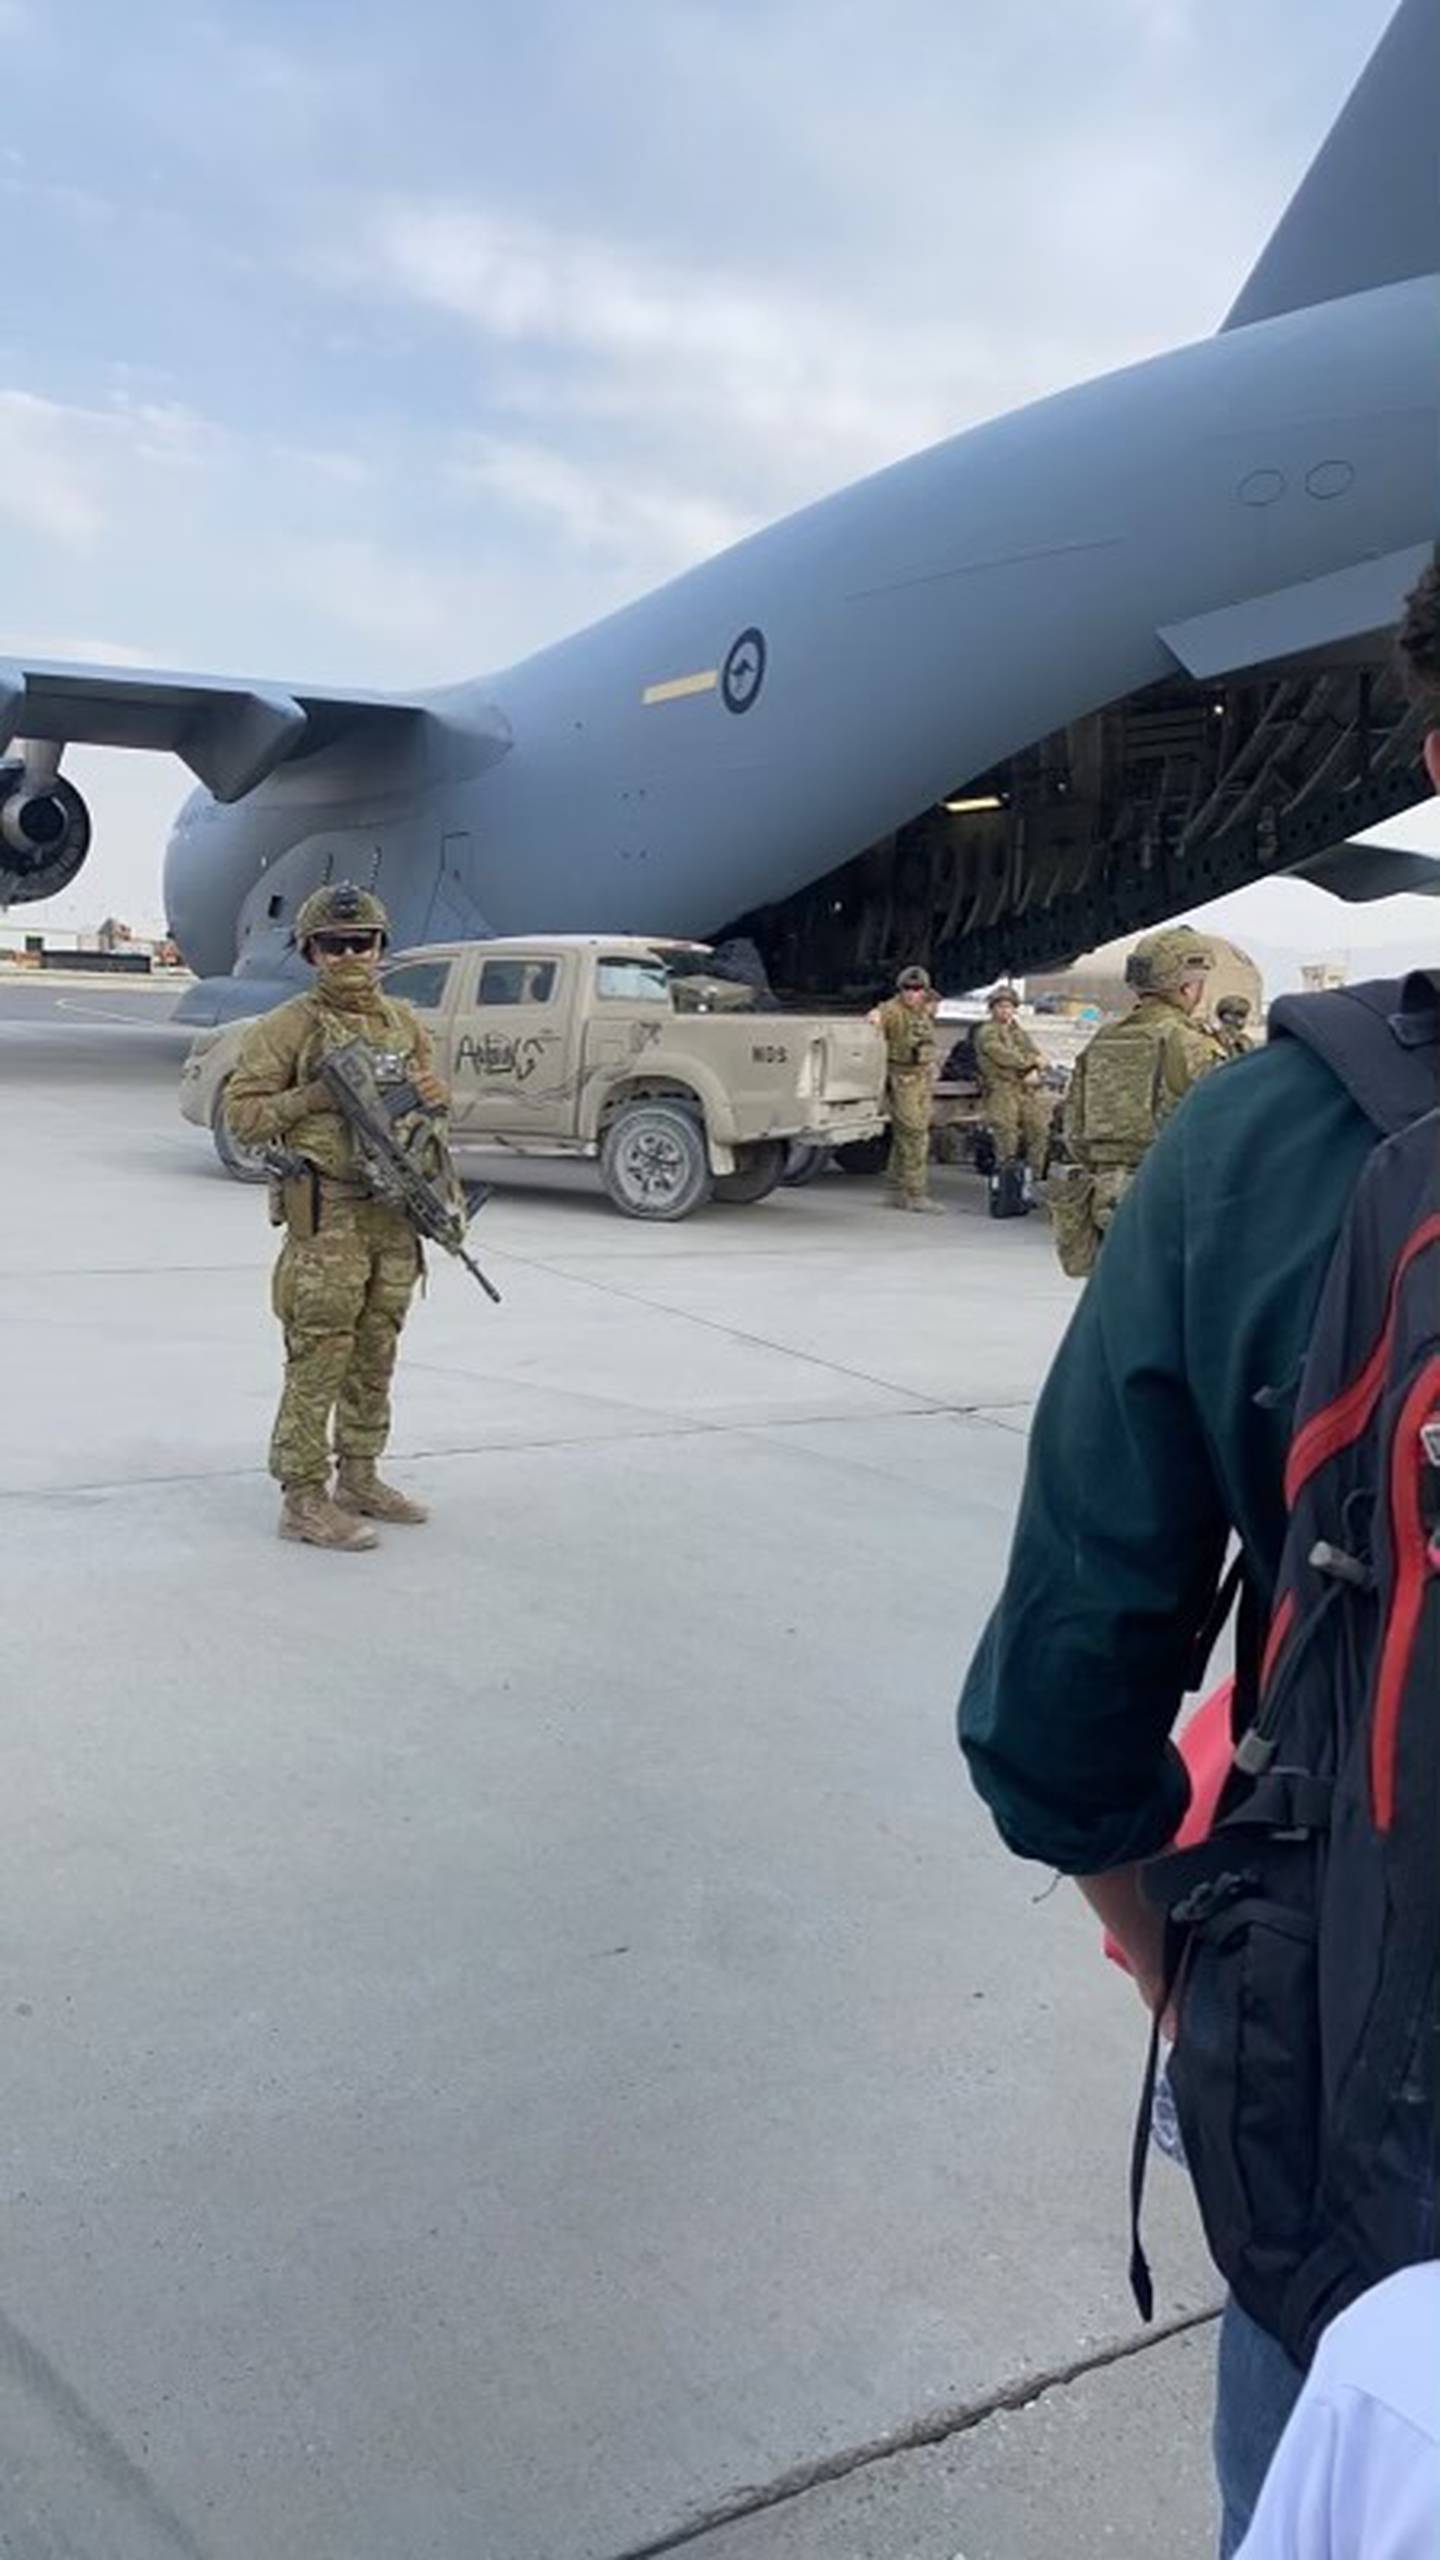 Abdul's family took this photograph as they were led onto the waiting evacuation plane at Kabul airport on Sunday. Photo / Supplied